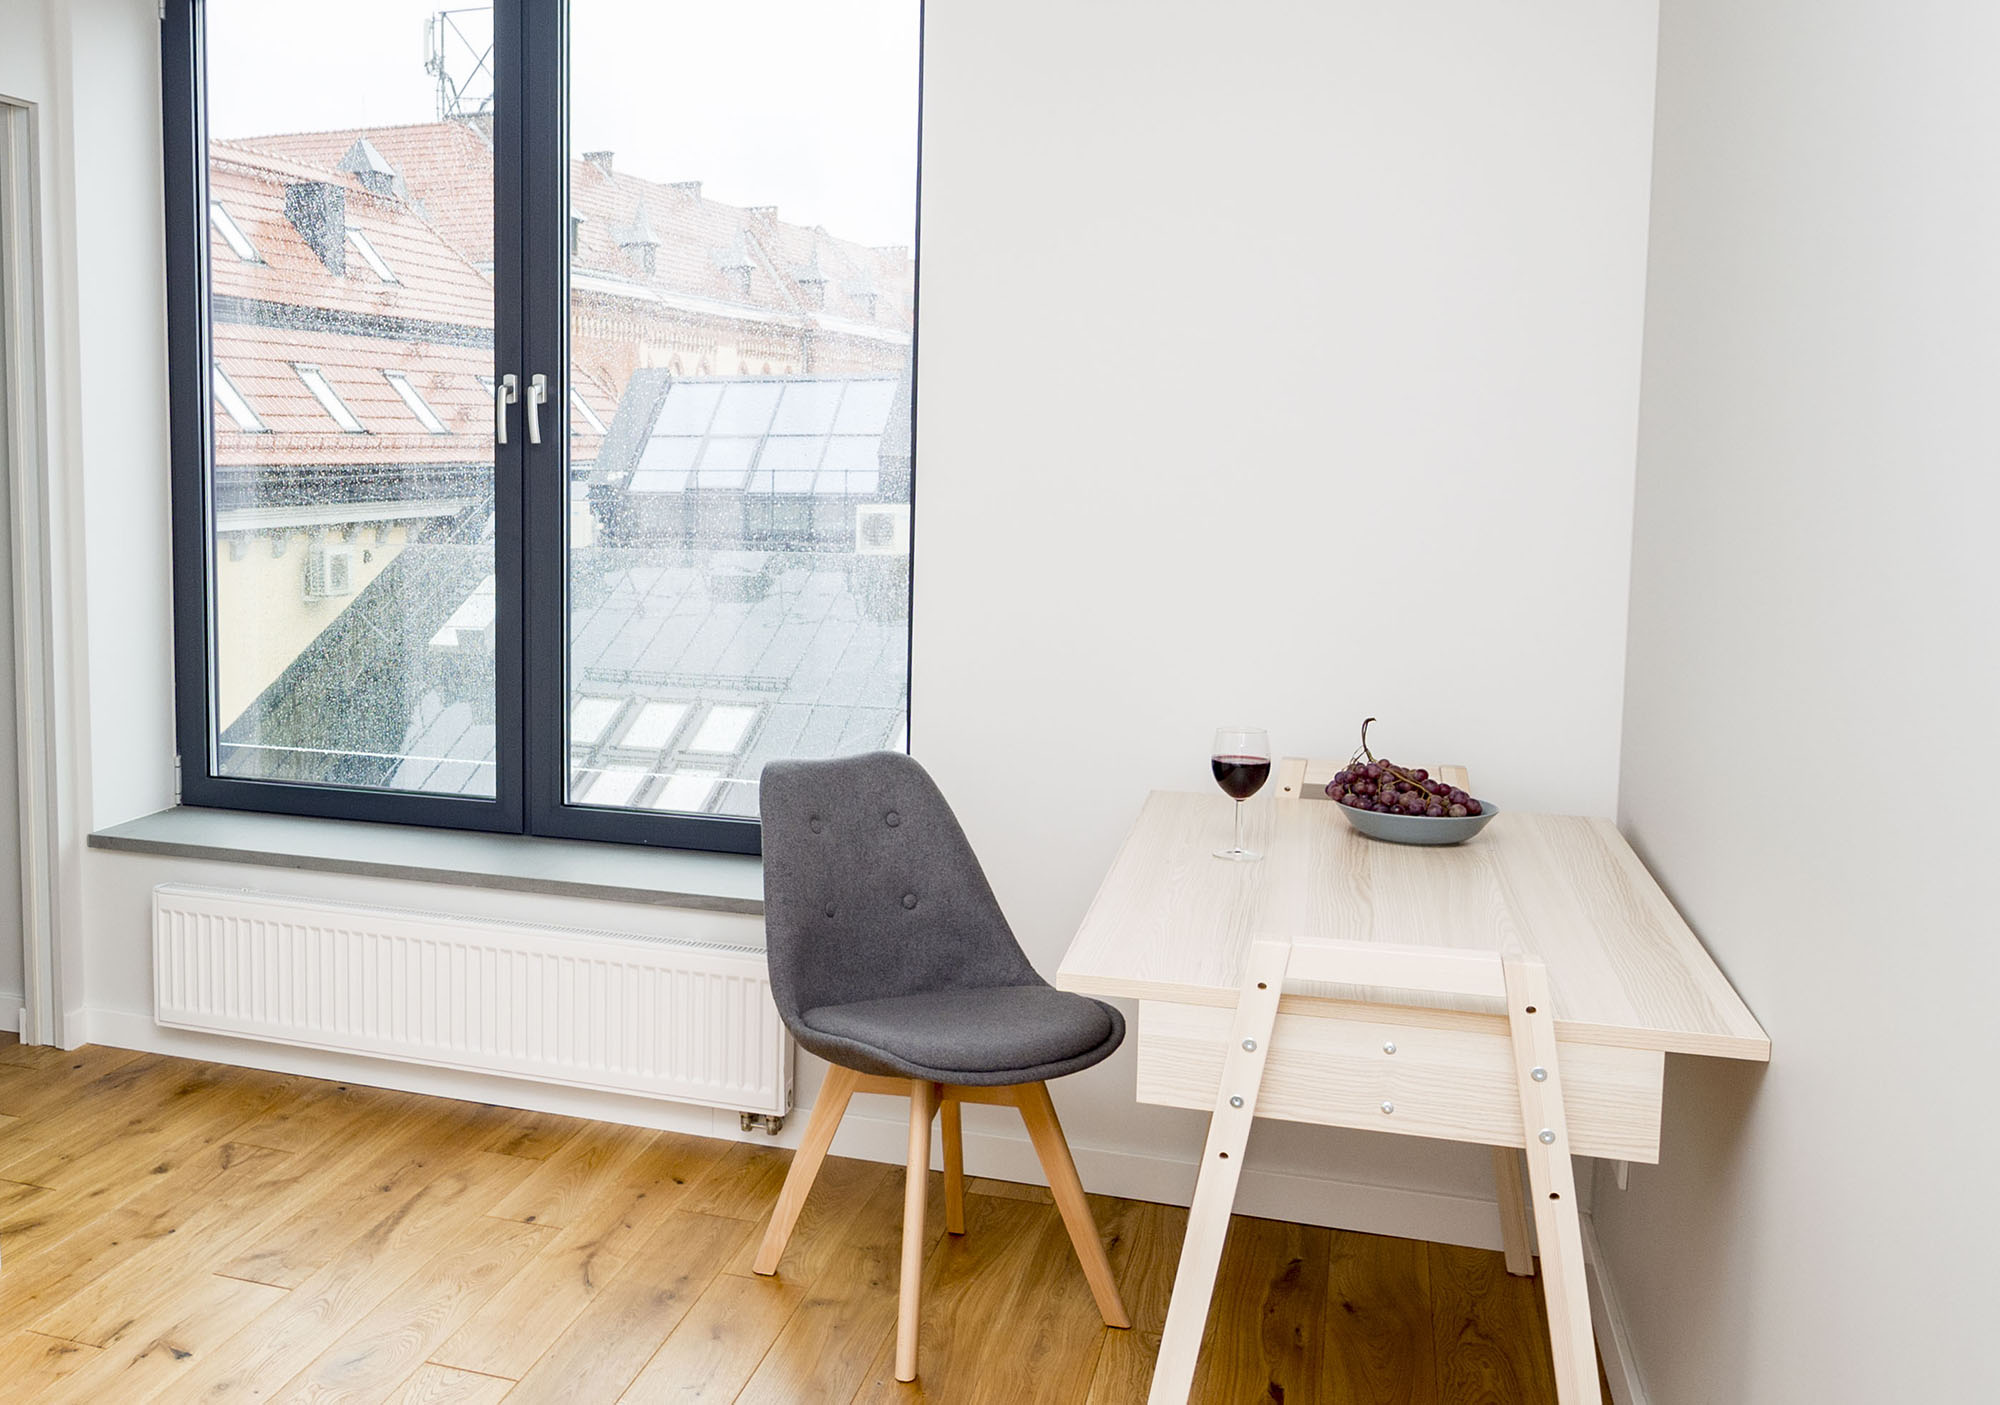 Pemba  Apartment in the heart of Kazimierz, One bedroom apartment - LANDMARK APARTMENTS